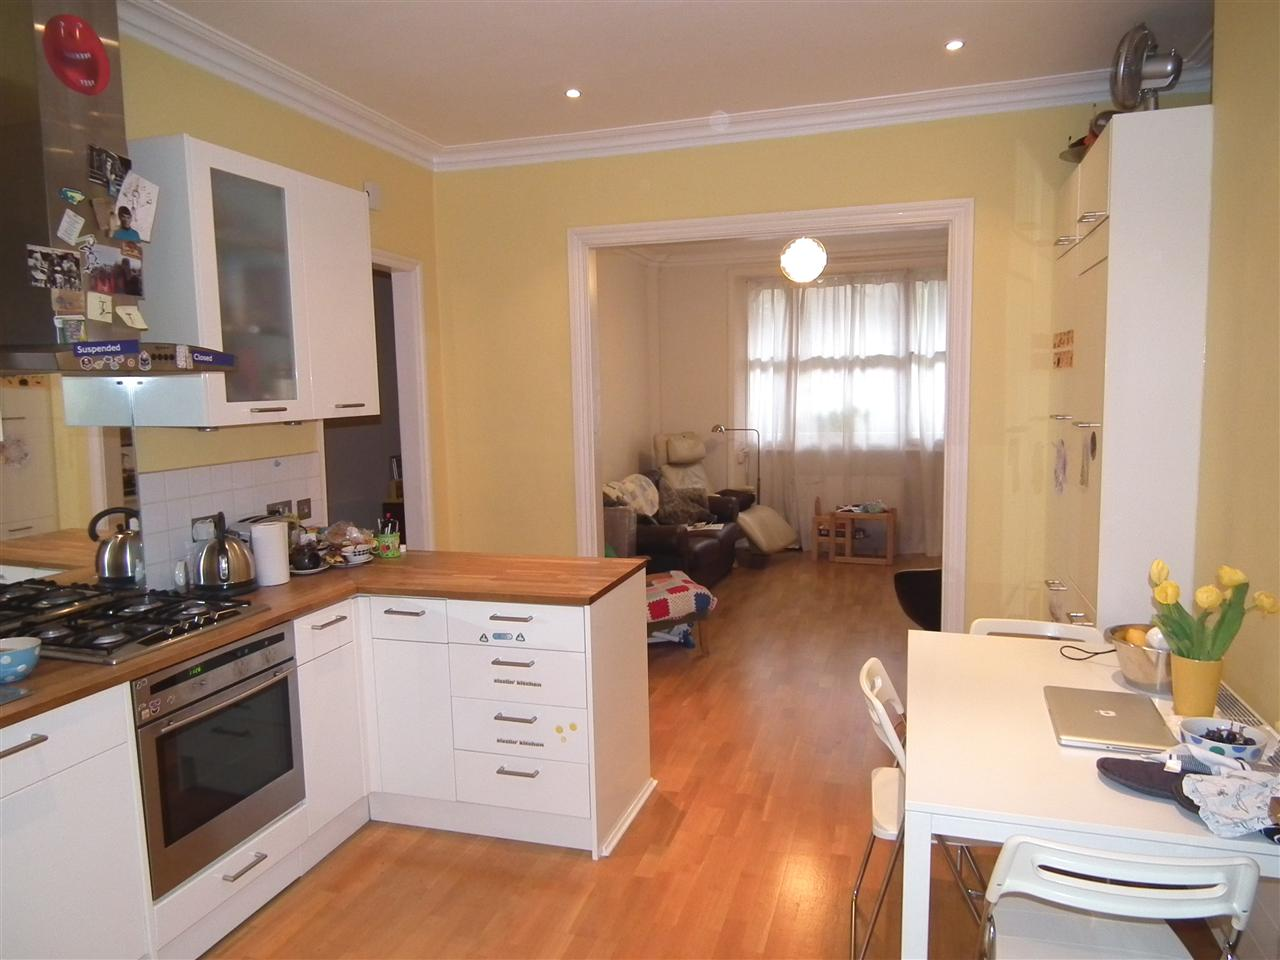 2 bed flat to rent in Lady Somerset Road, London, NW5